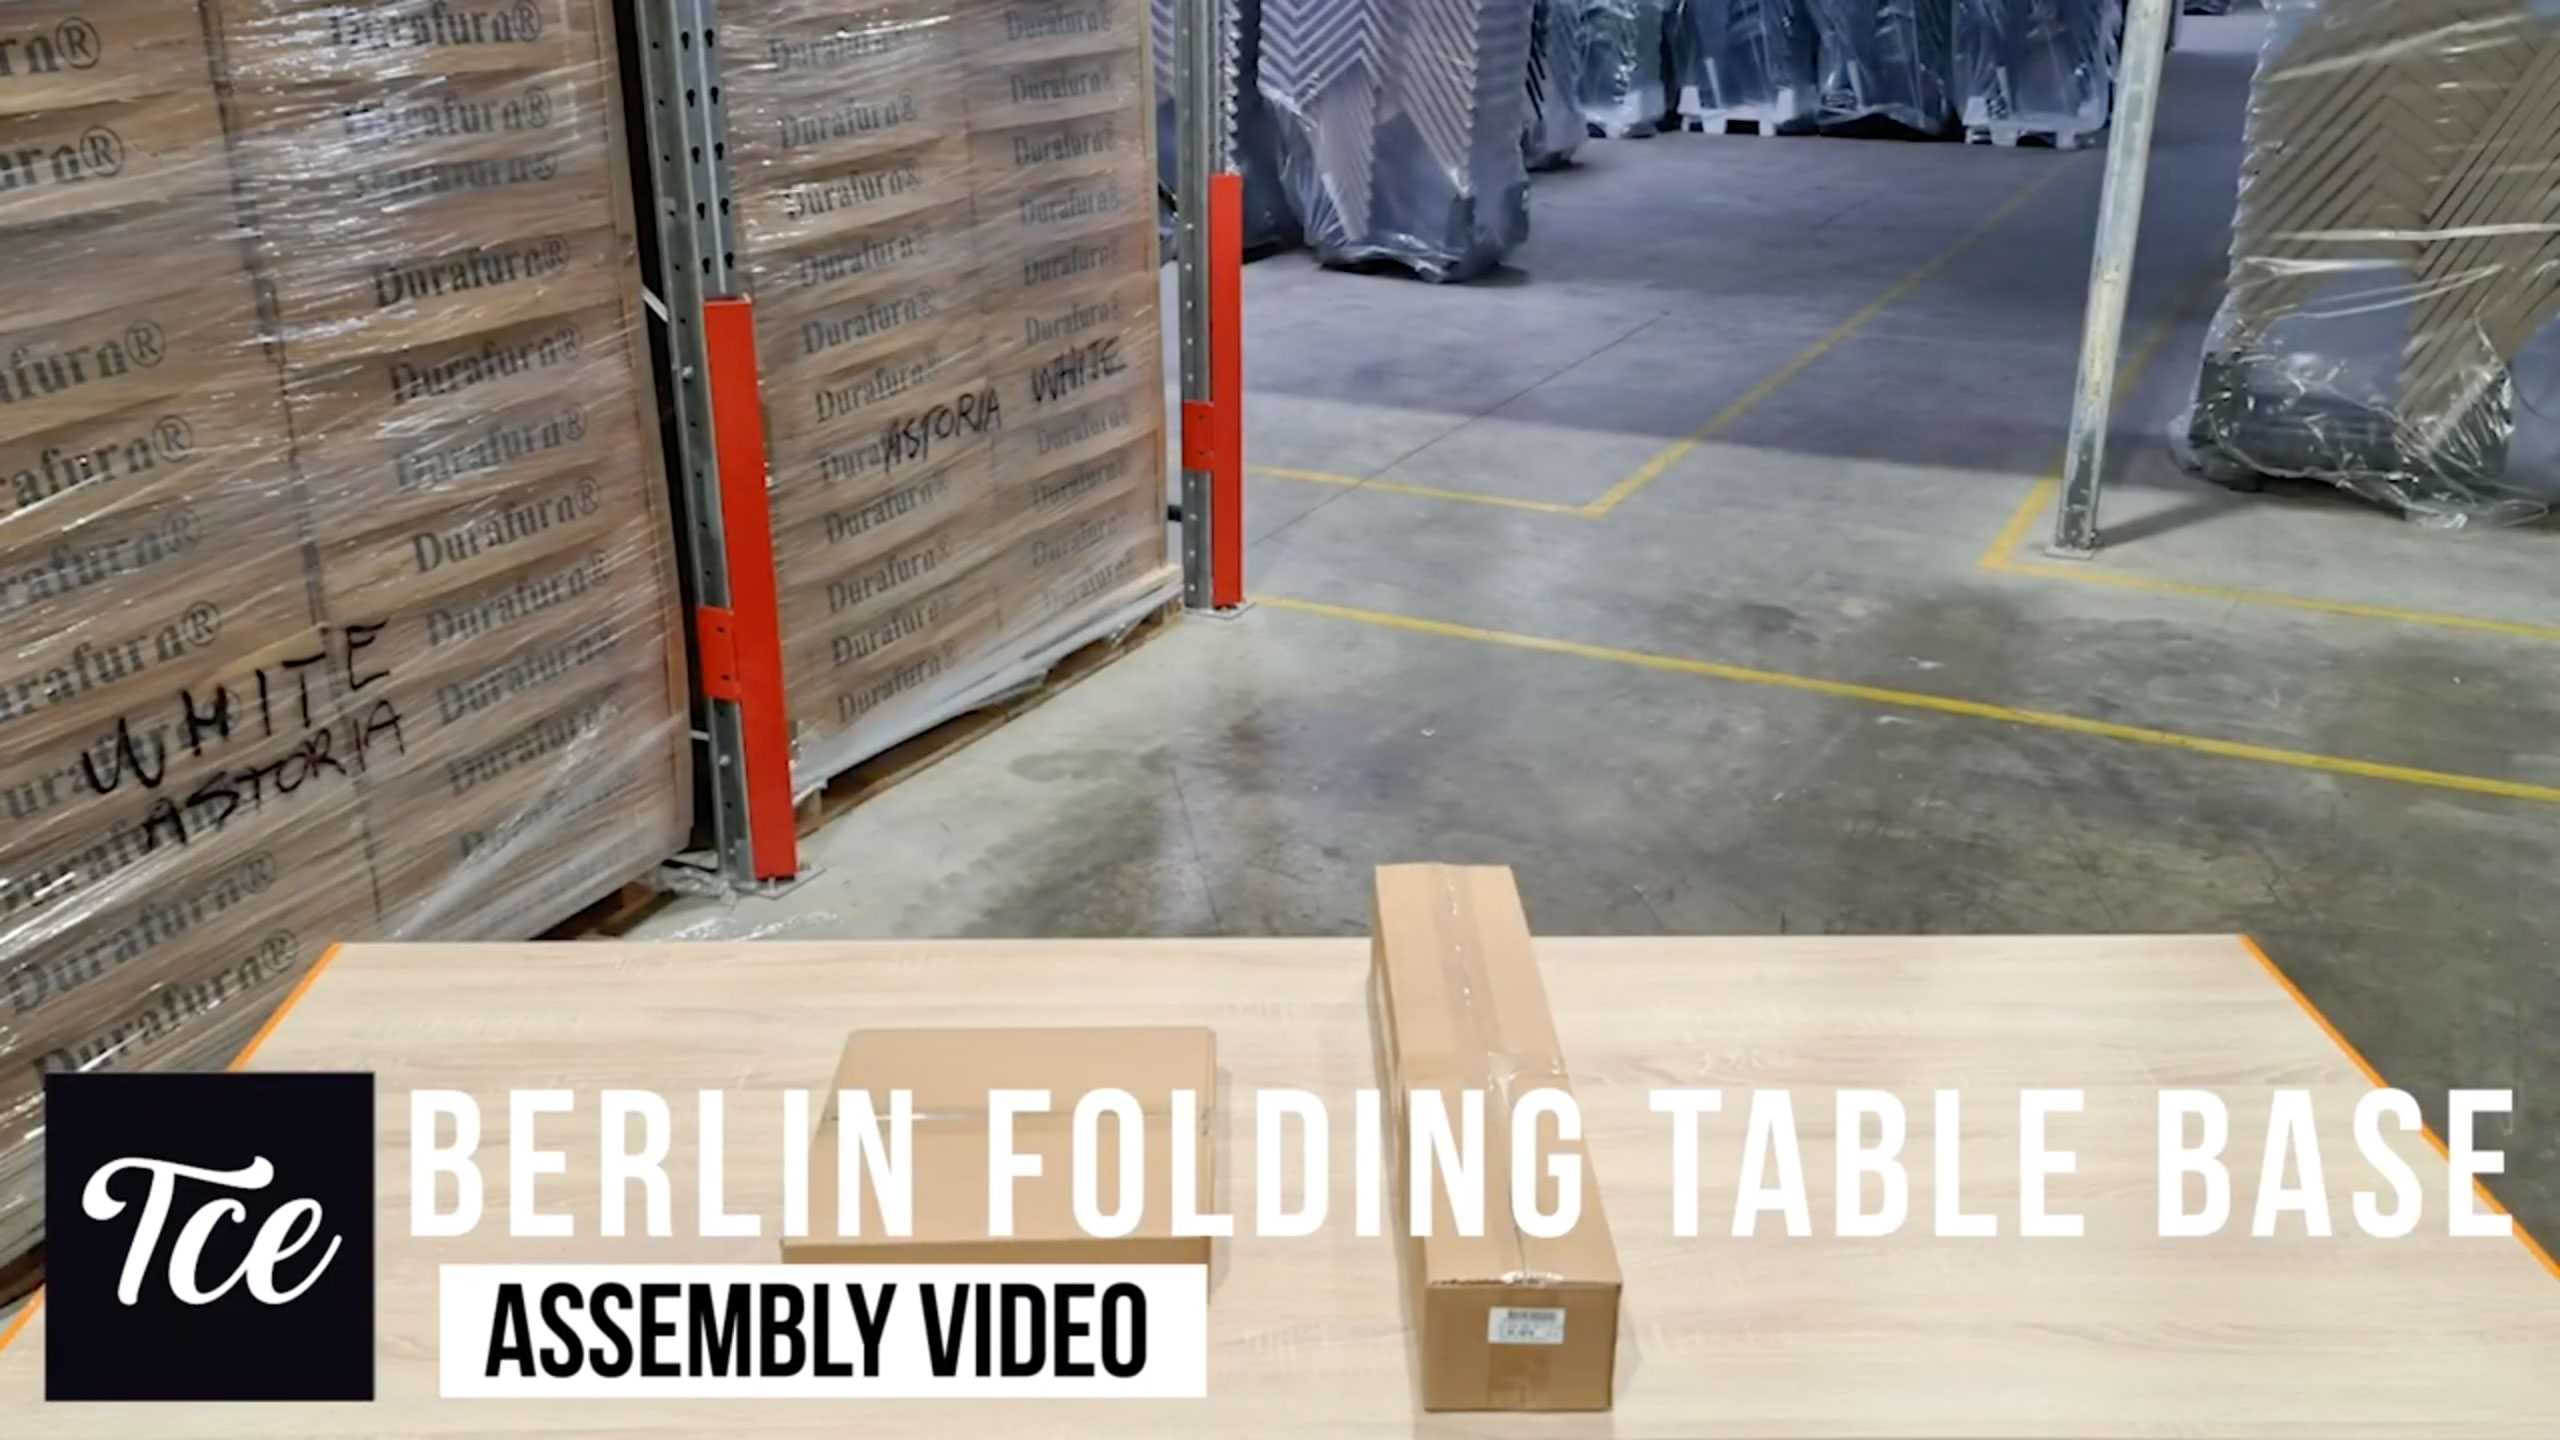 Assembly of the Berlin Folding Table Base